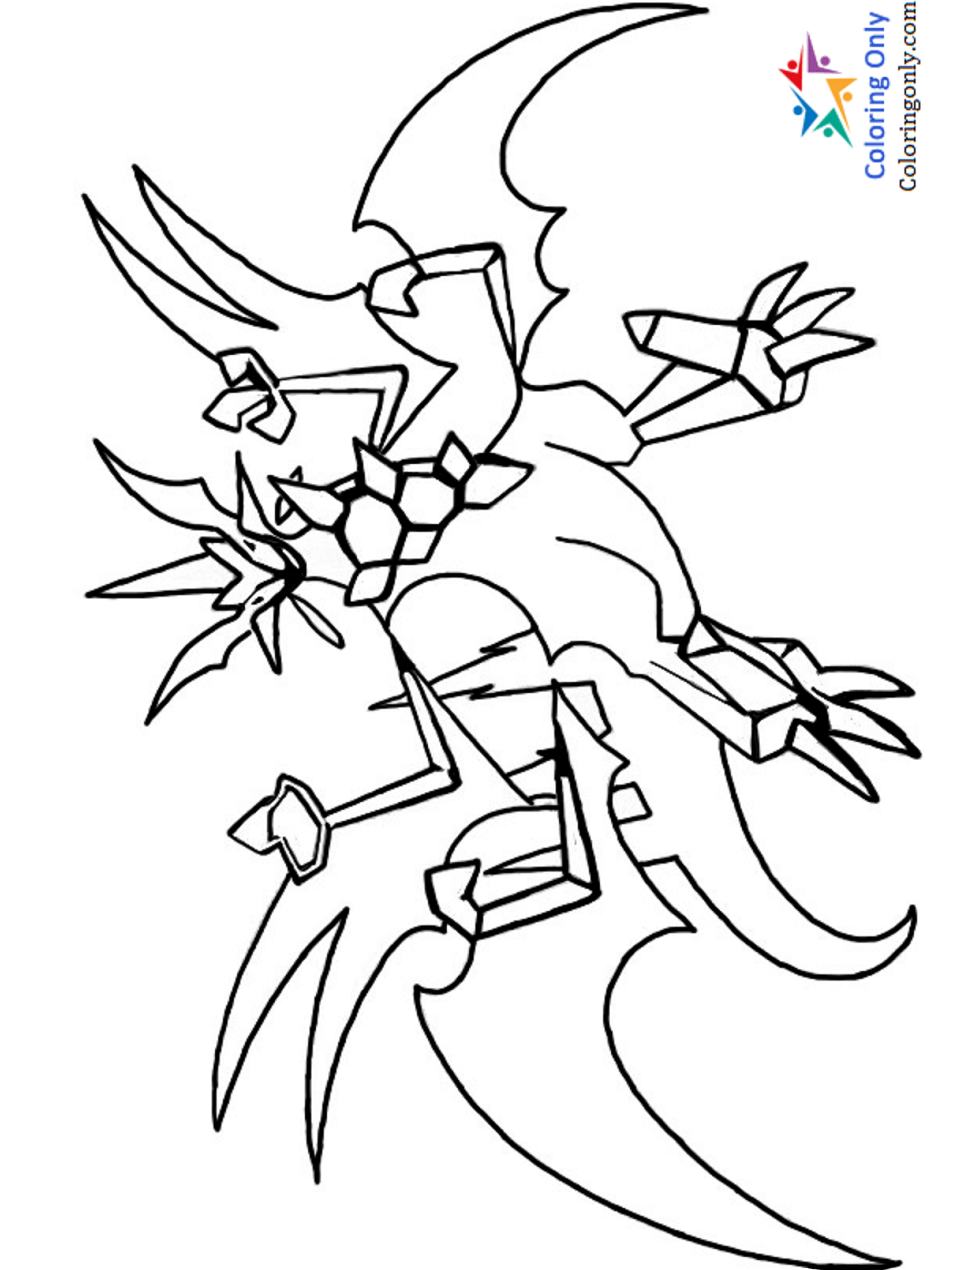 Pokemon ultra necrozma coloring pages